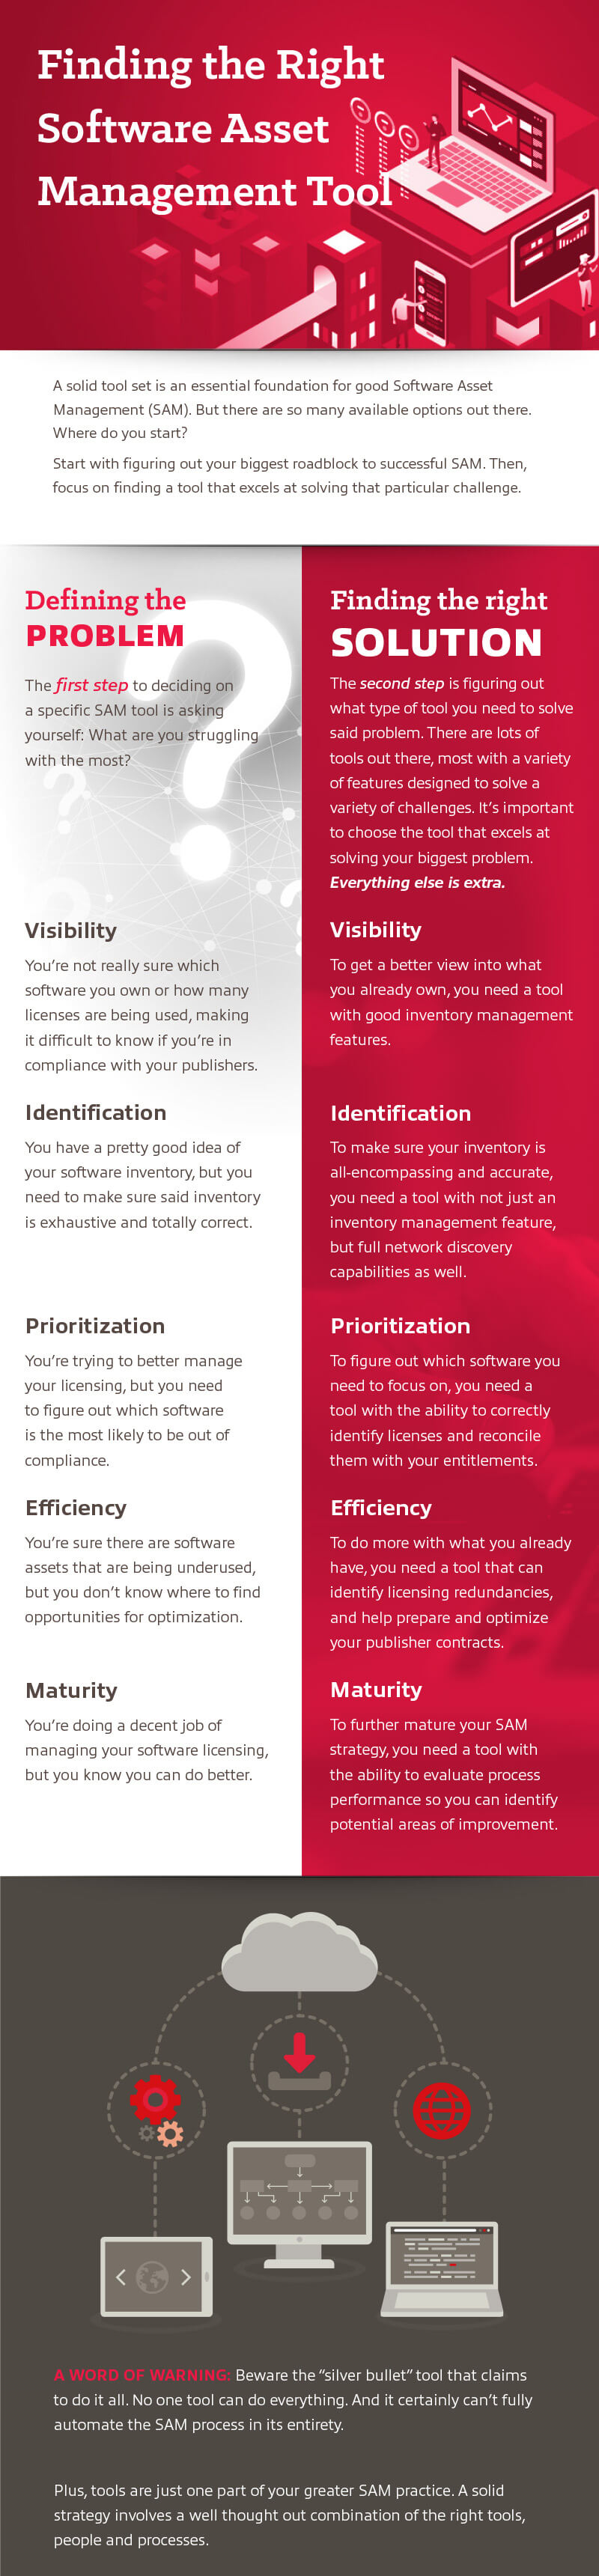 Infographic displayingFinding the Right Software Asset Management Tool as transcribed further below